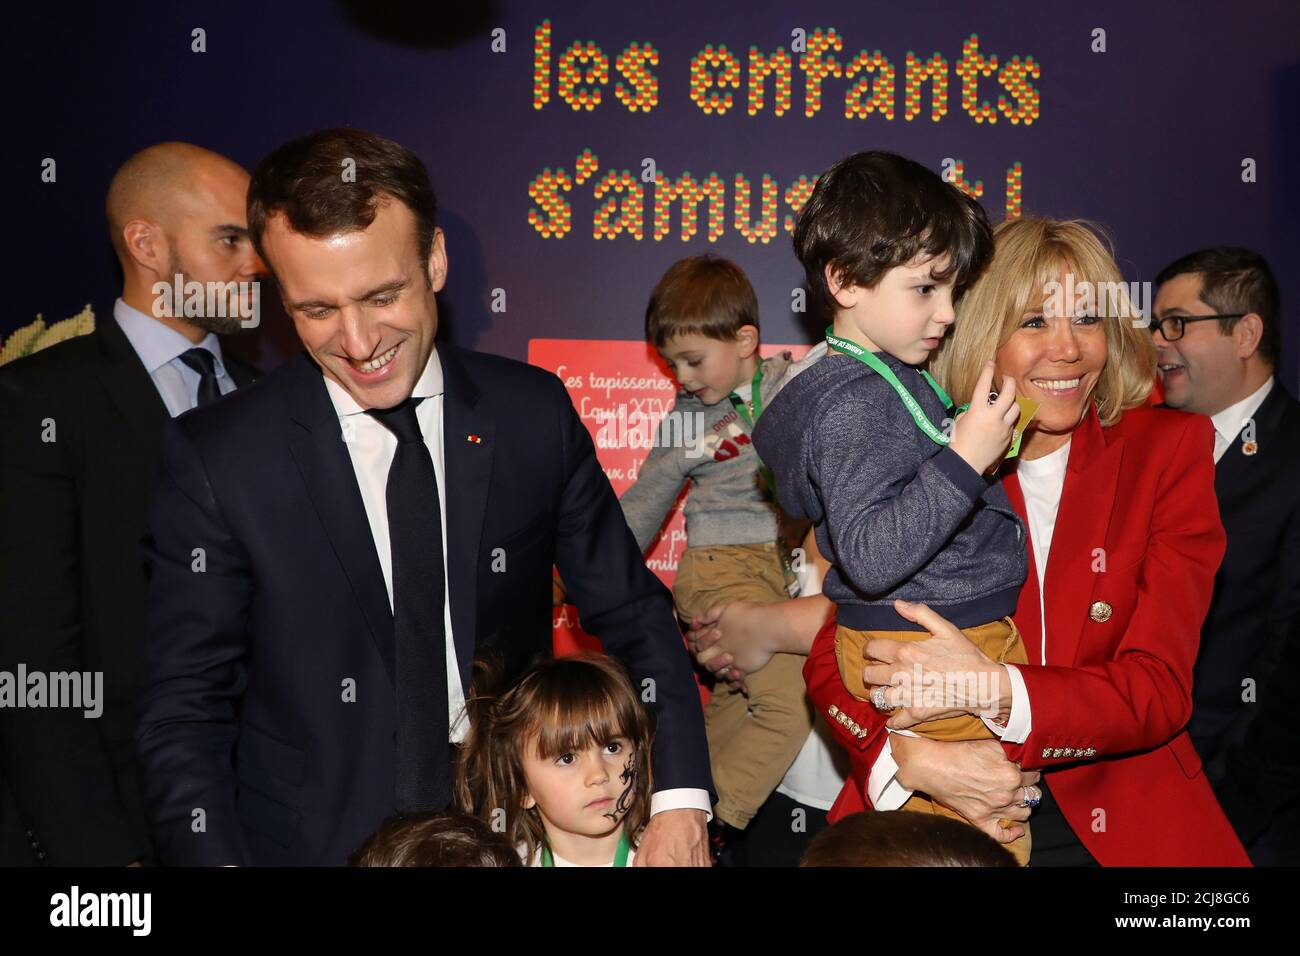 French President Emmanuel Macron And His Wife Brigitte Macron Meet Children During The Christmas Party For